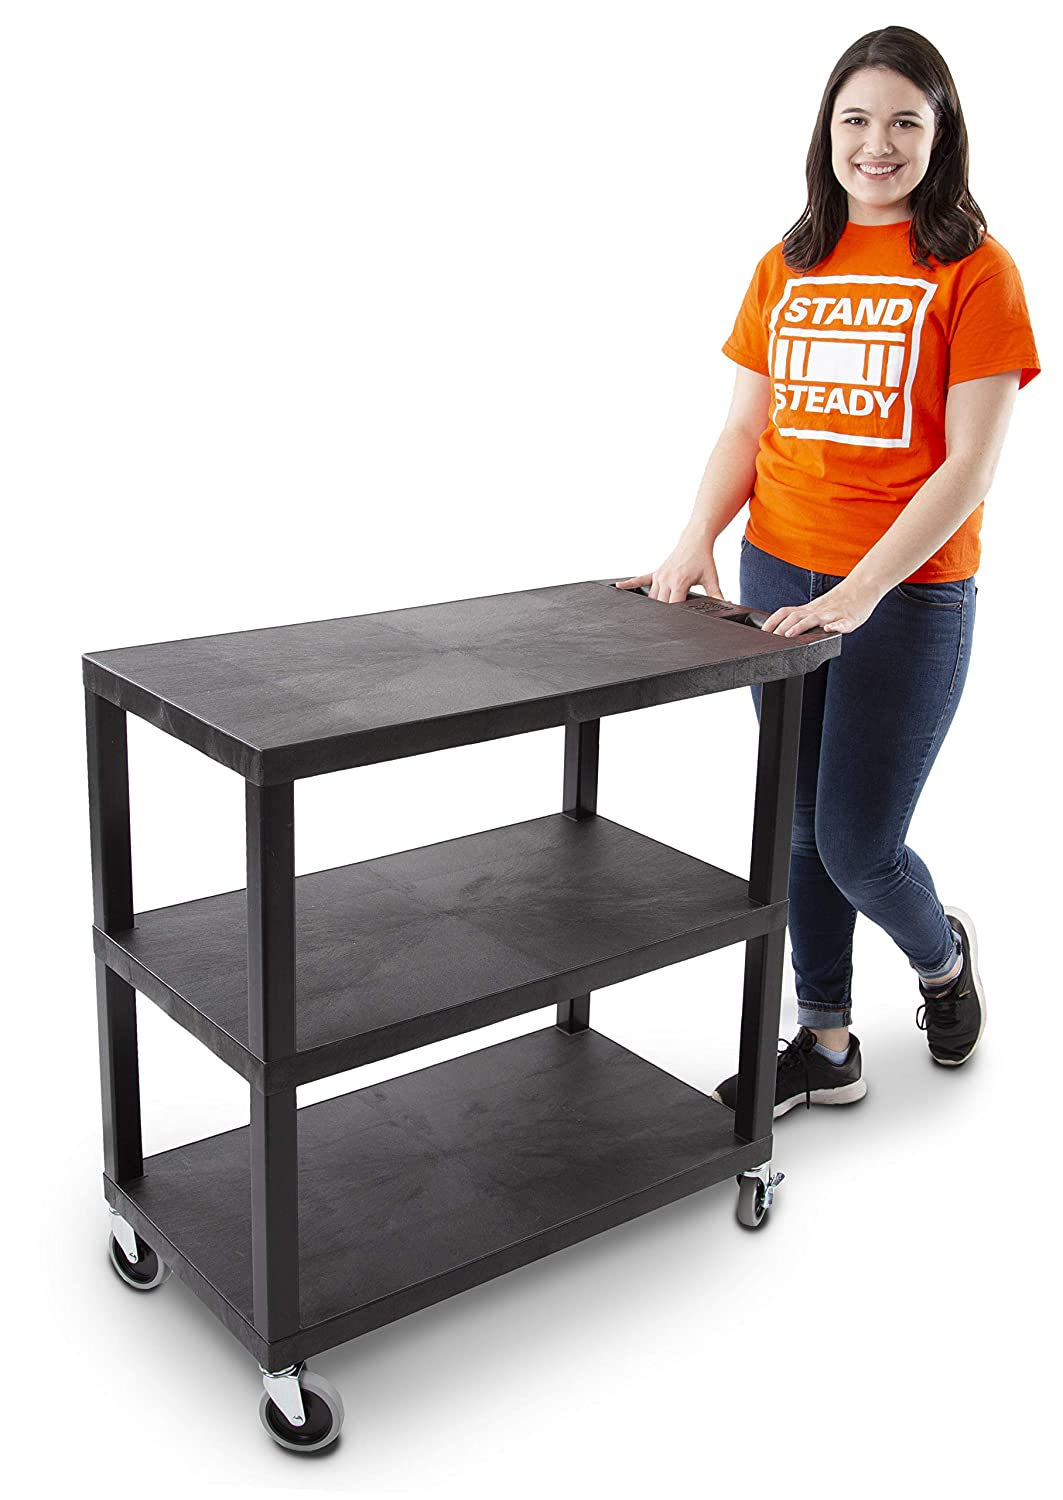 Original Tubstr - Flat Top Utility Cart - Heavy Duty, Supports up to 400 lbs - Flat Shelf Multipurpose Cart Perfect for Home, Garage, Catering, Warehouse and More (3 Shelf / 35 x 18)